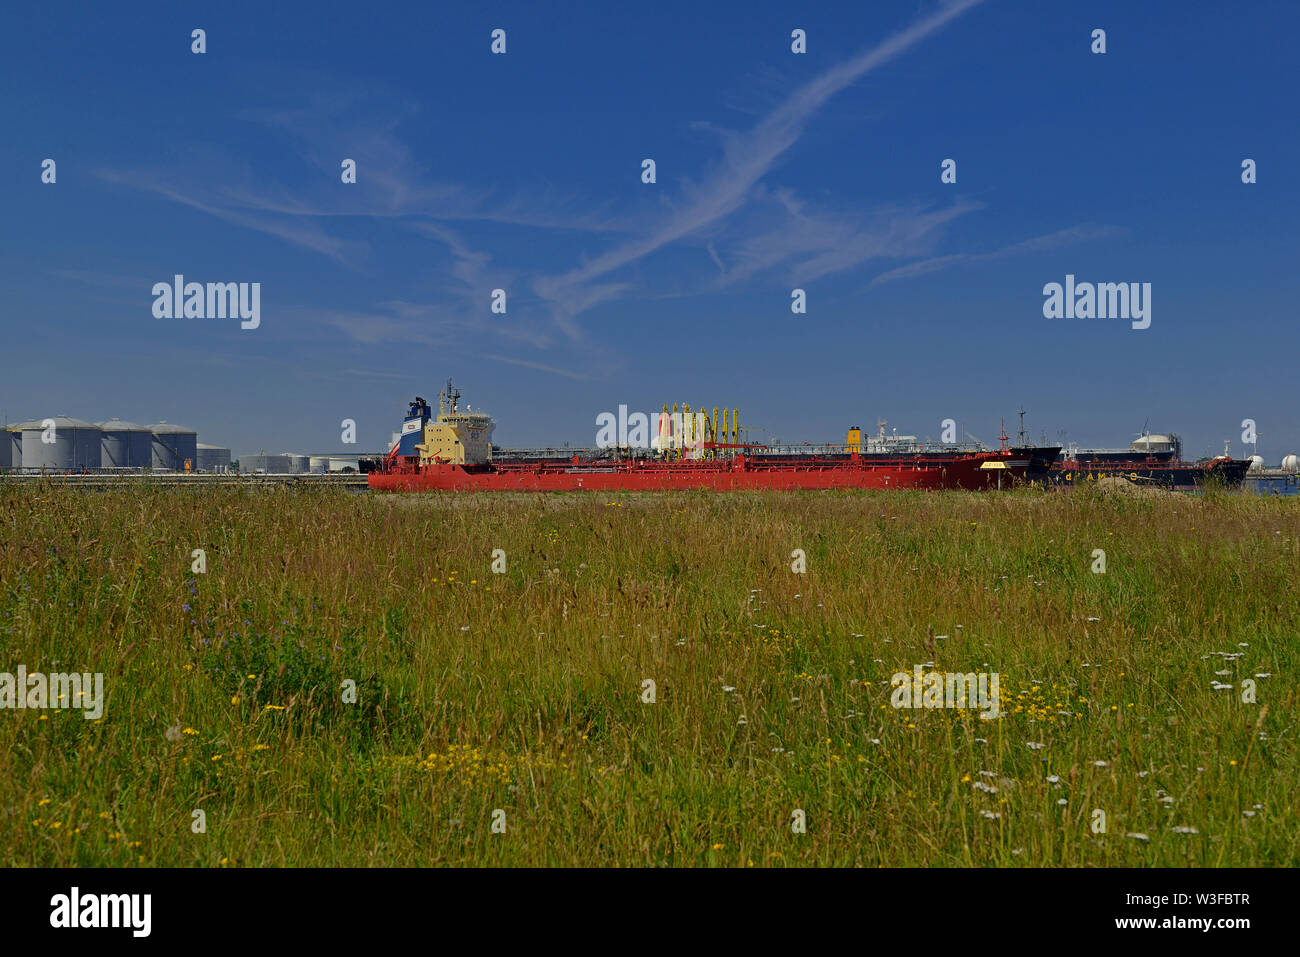 Petrochemical Products Stock Photos & Petrochemical Products Stock